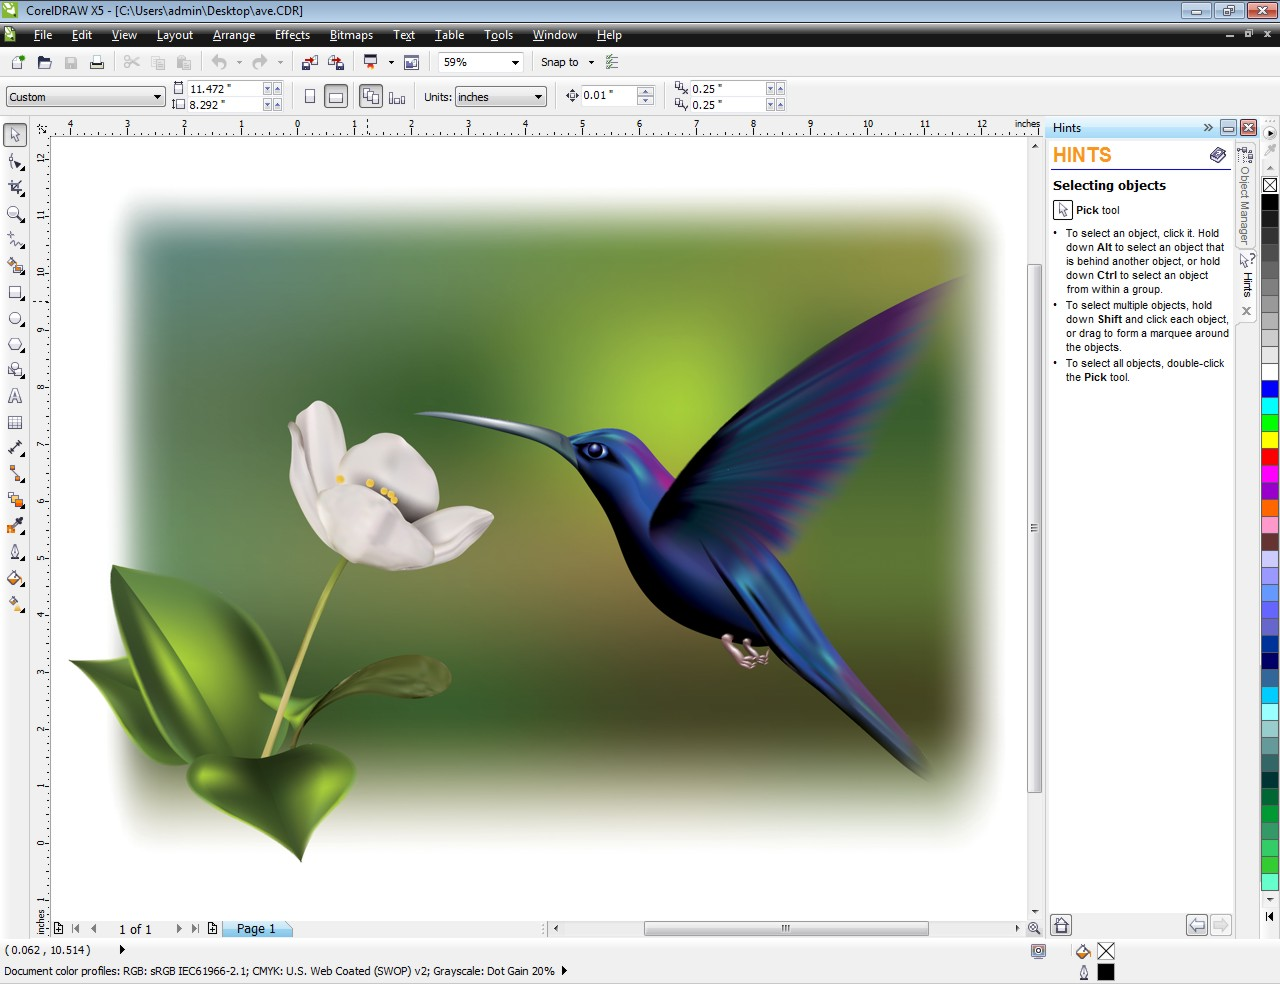 Скачать бесплатно CorelDRAW Premium Suite X5 with Keygen 2011 без